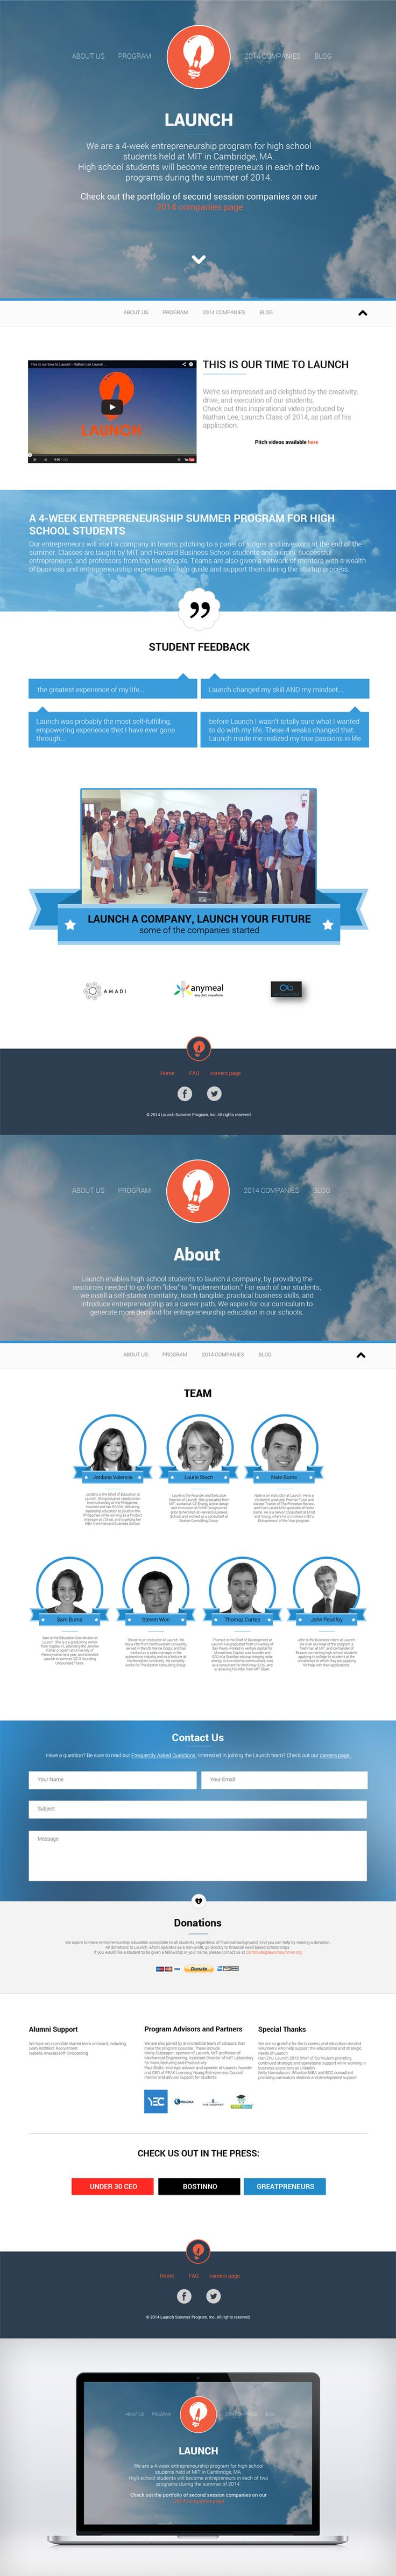 website design for Launch company